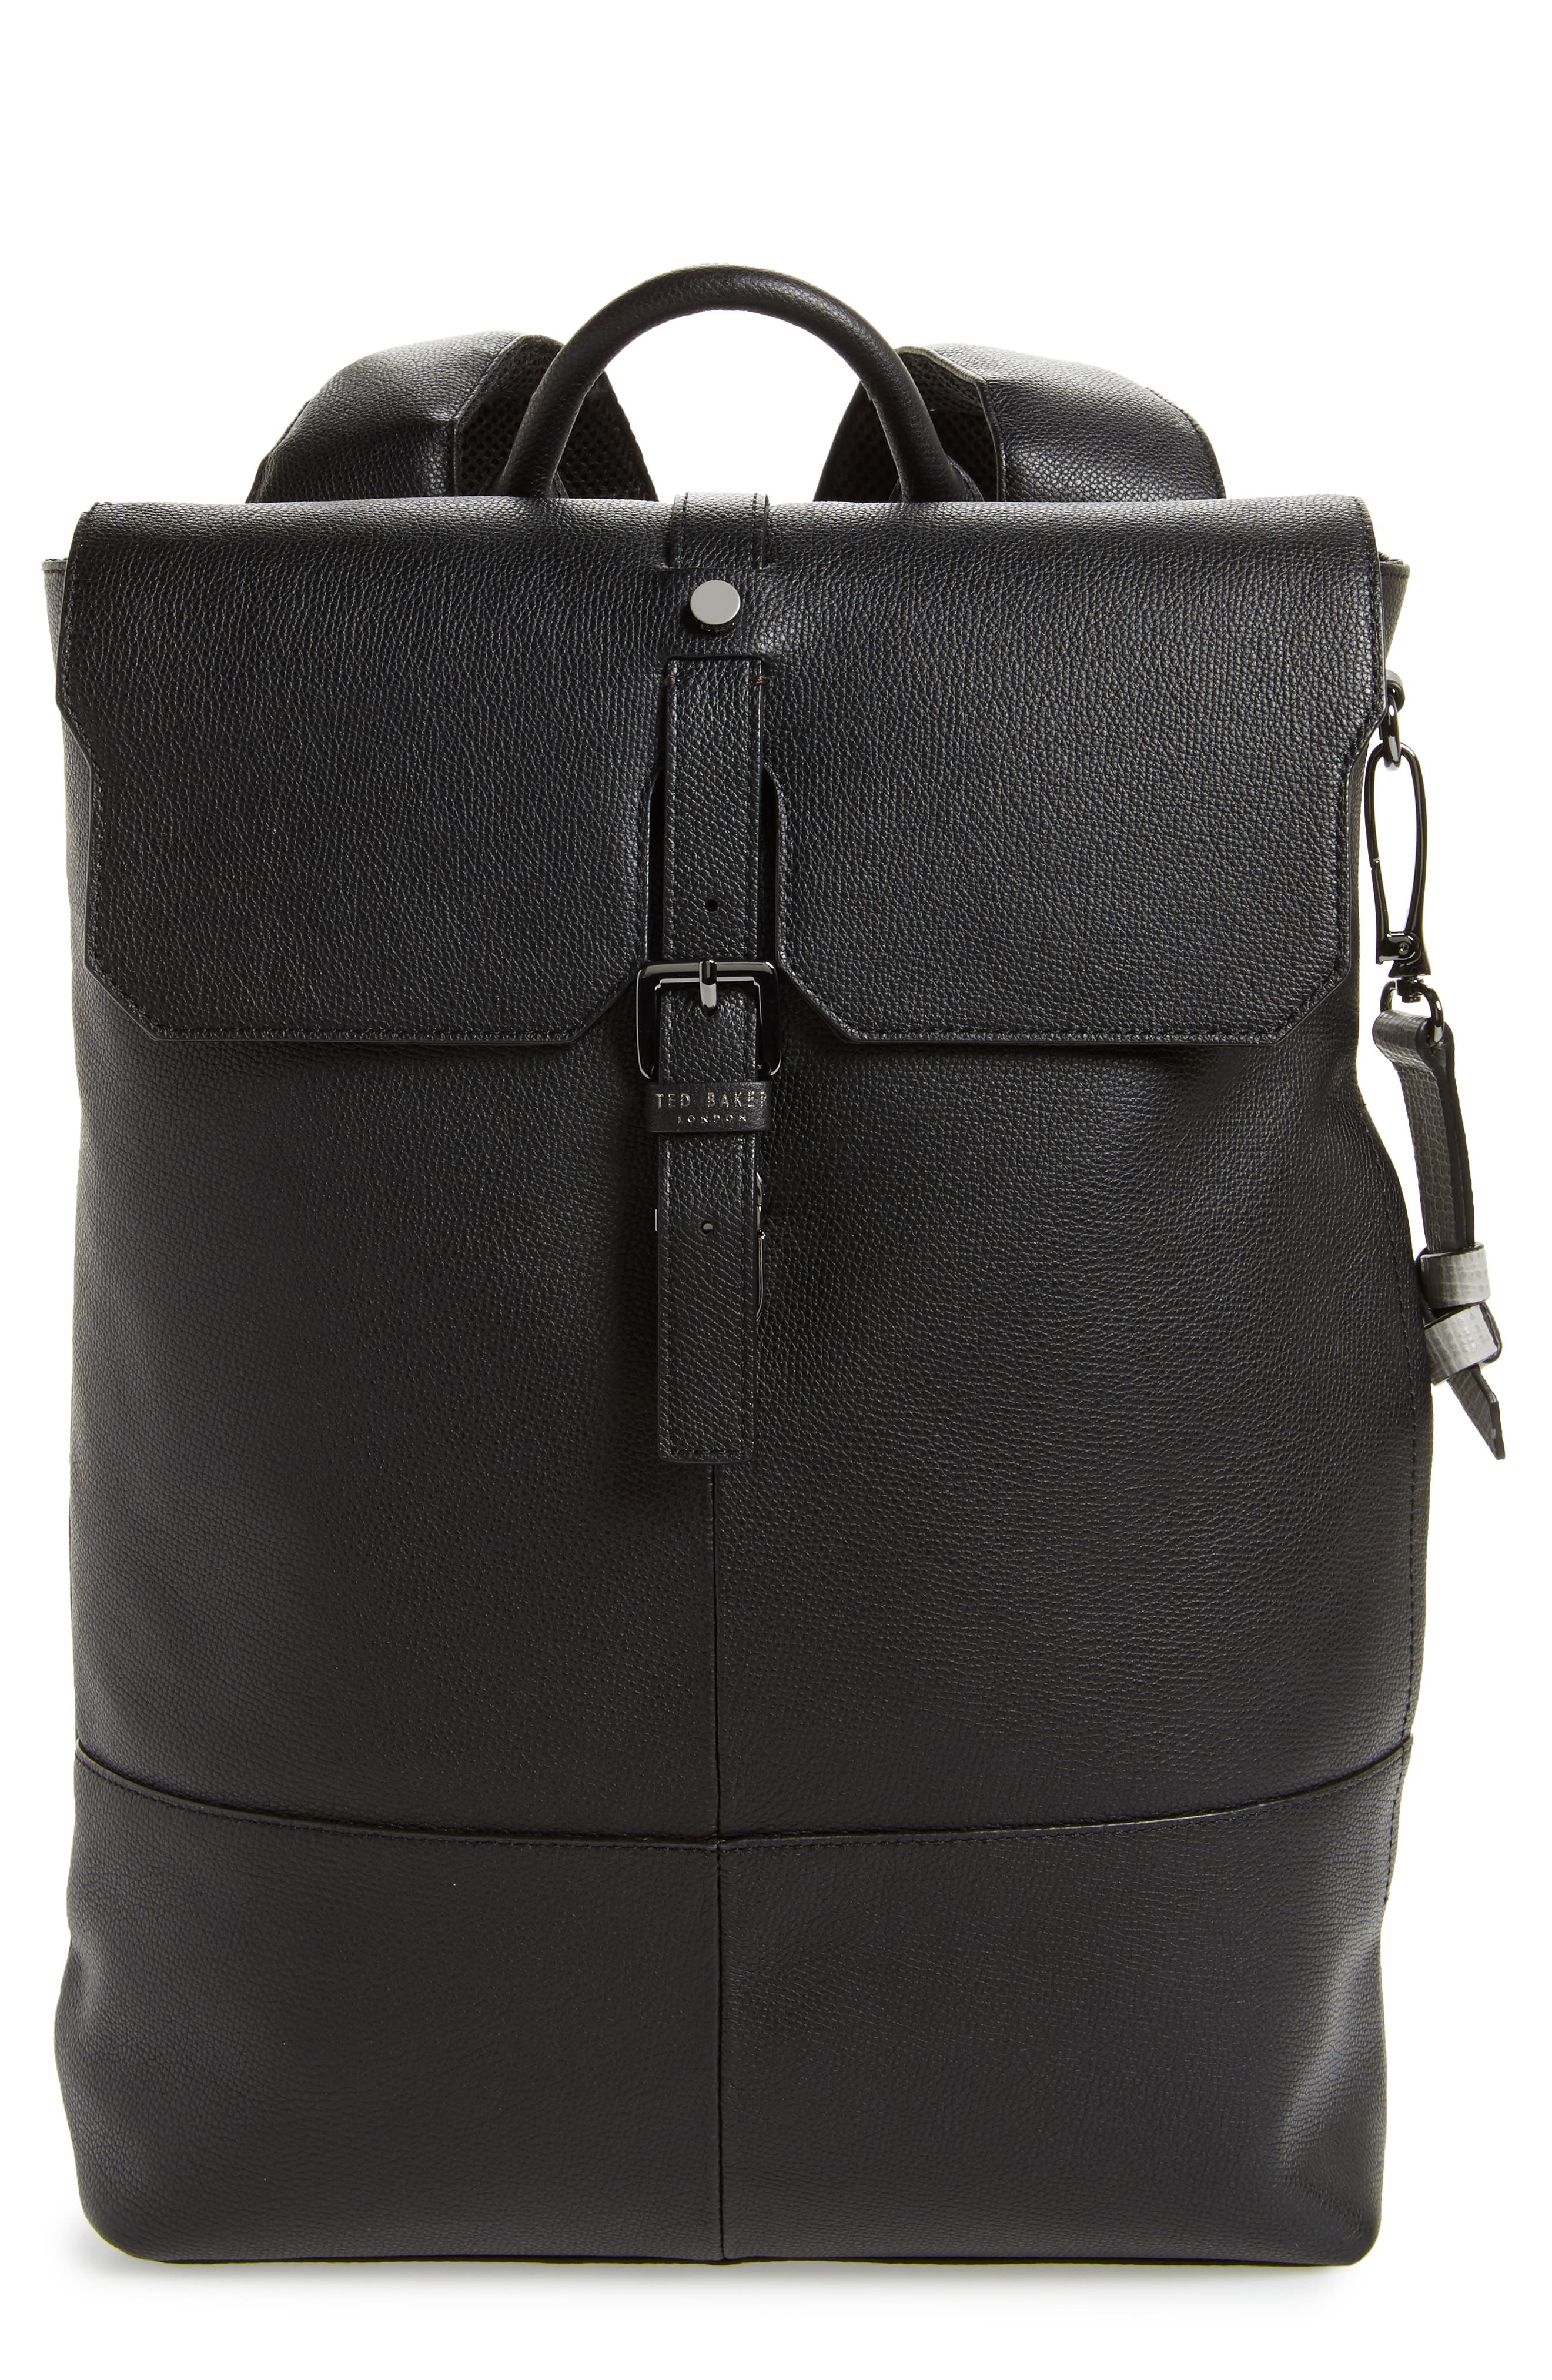 Beach Leather Backpack,                             Main thumbnail 1, color,                             Black